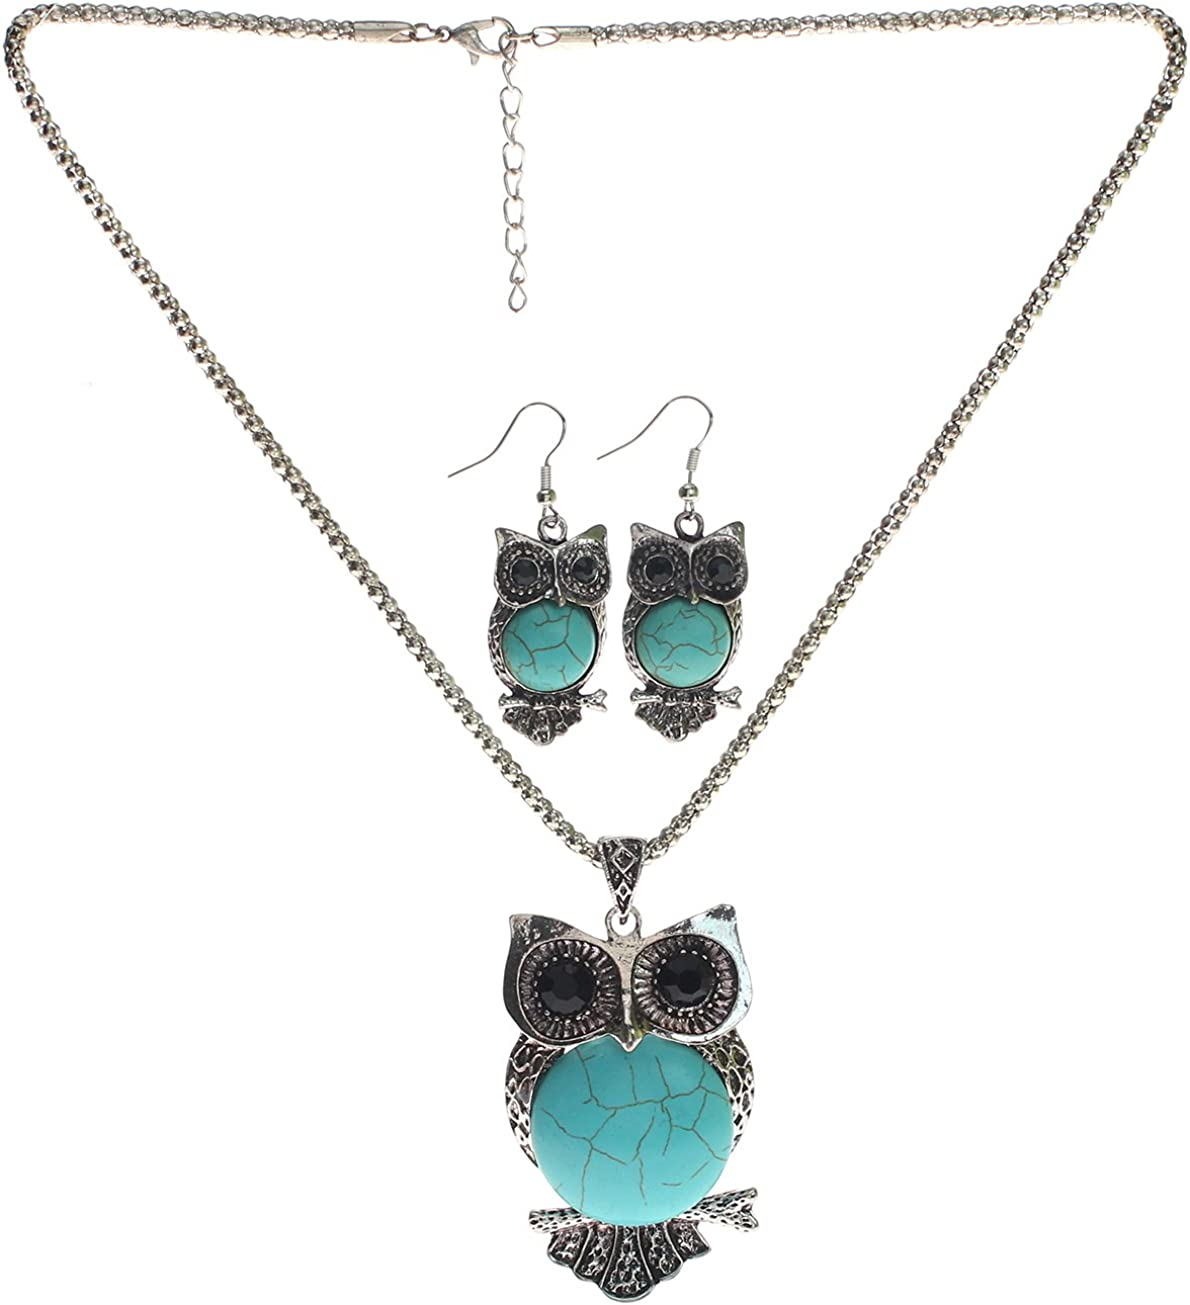 Lova Jewelry Owl Turquoise Necklace and Earrings Set